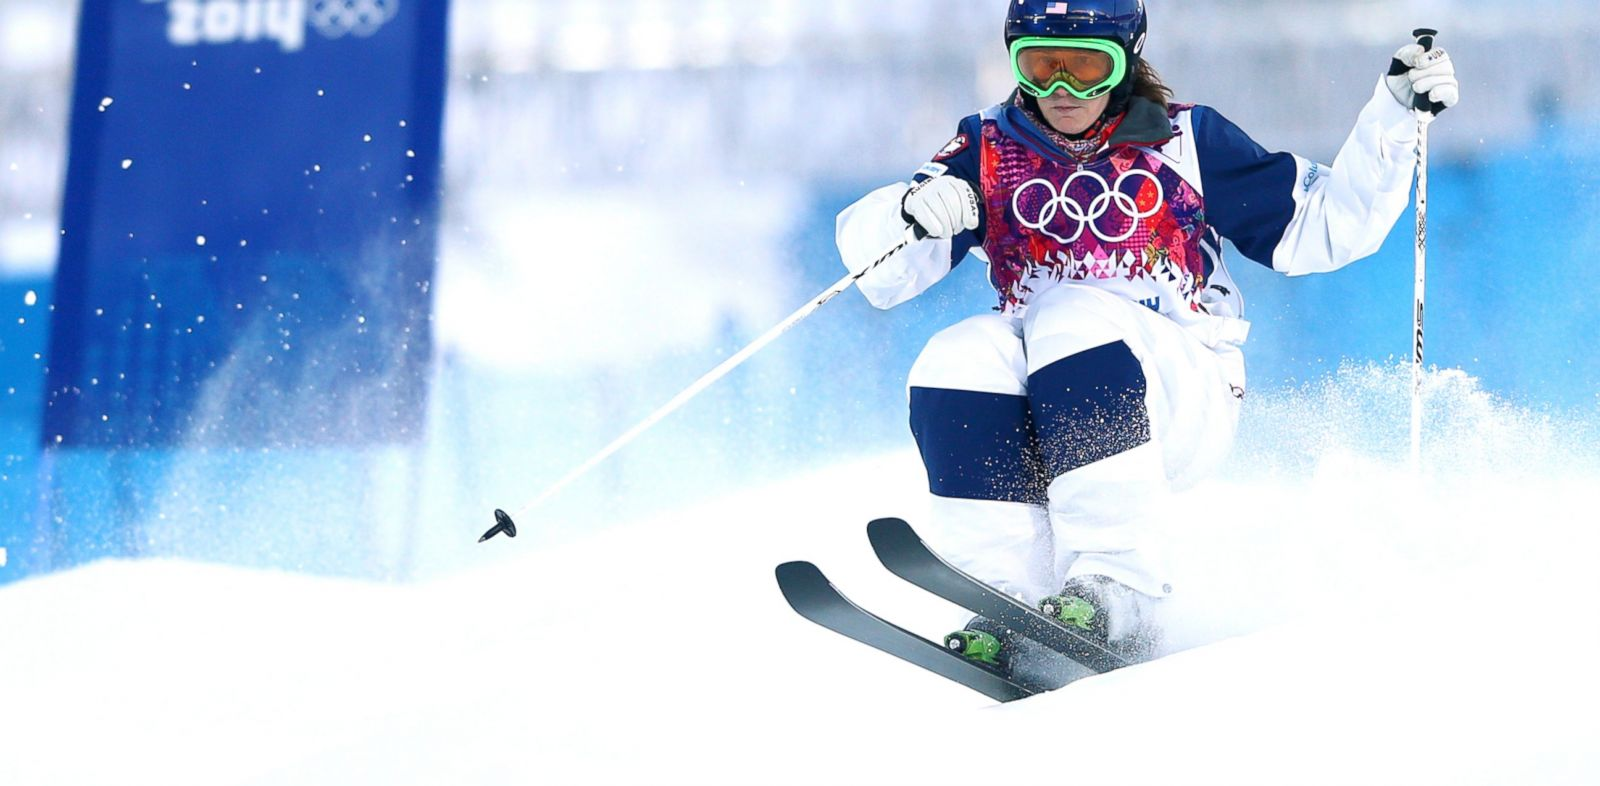 PHOTO: Heather McPhie of the United States competes in the ladies moguls qualification during the Sochi 2014 Winter Olympics at Rosa Khutor Extreme Park in Sochi, Russia, Feb. 6, 2014.